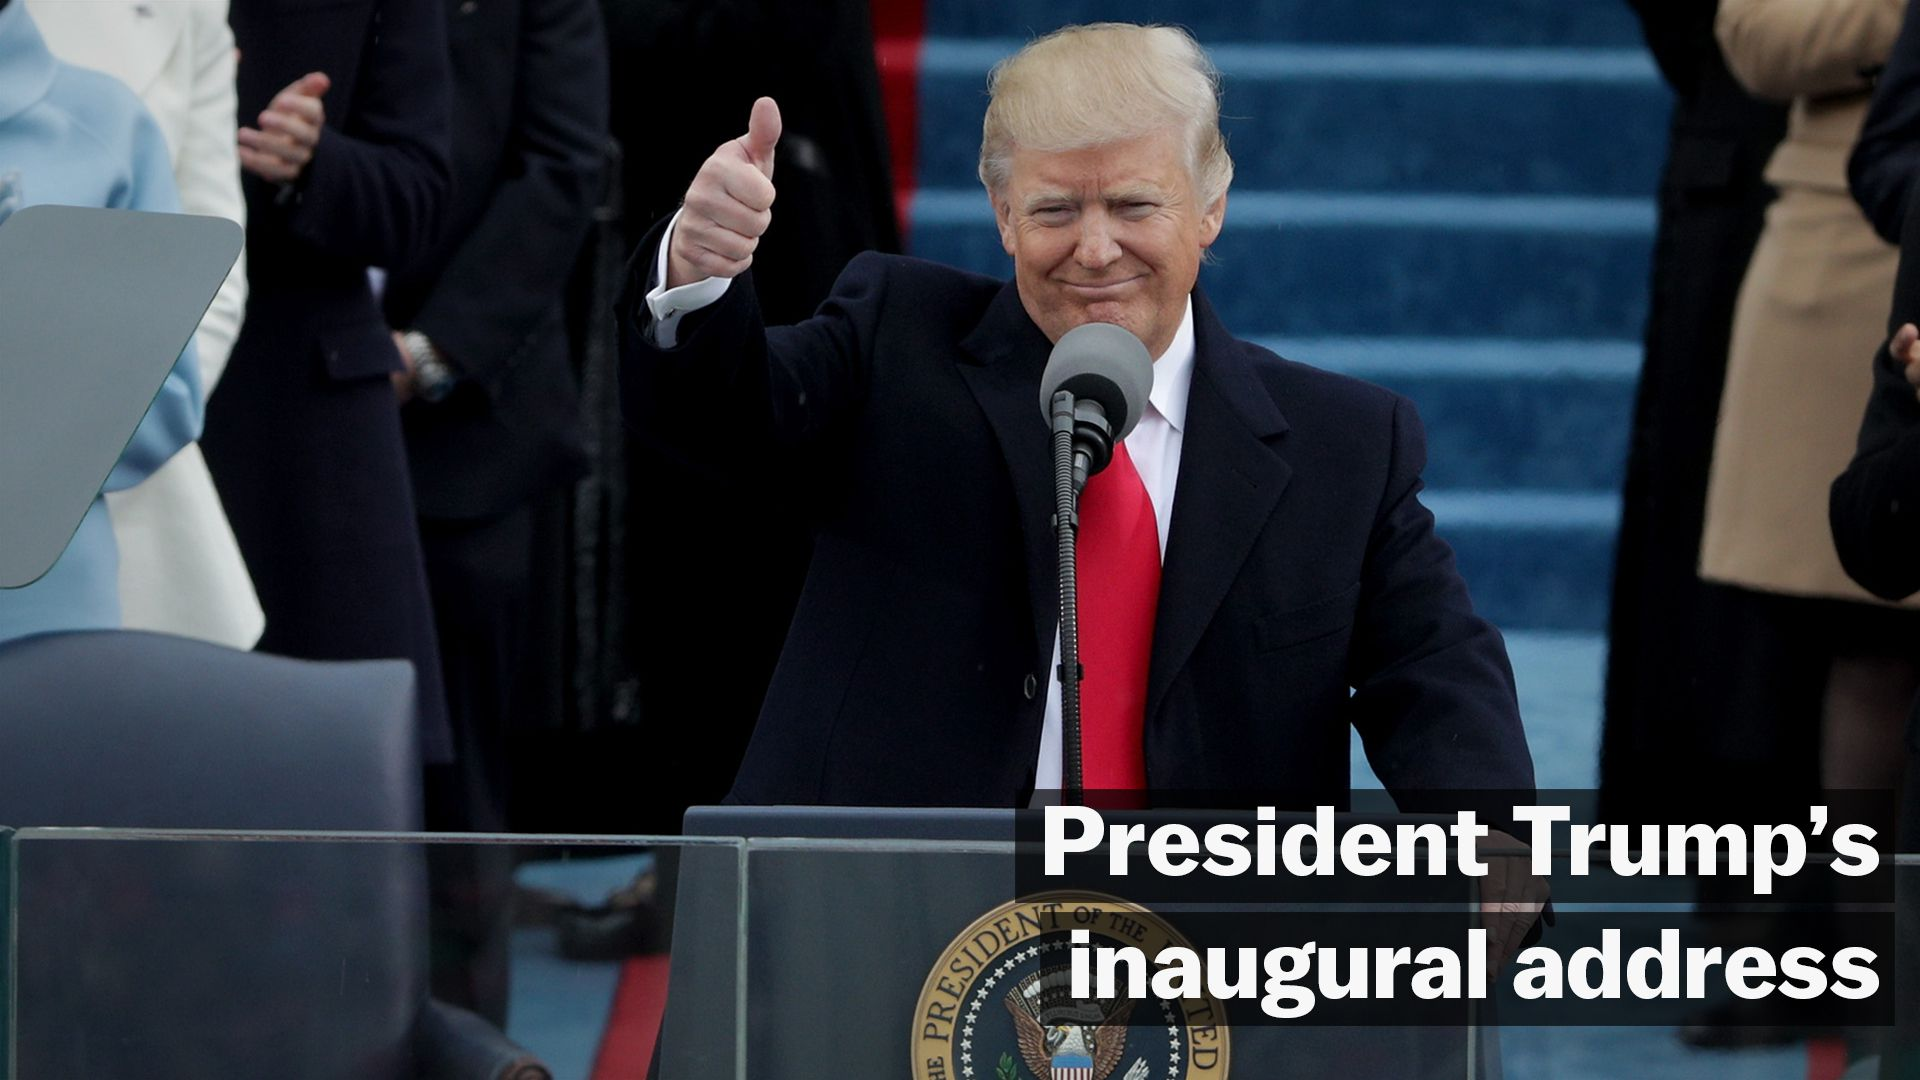 The real target of Trump's inaugural speech wasn't Barack Obama. It was George W. Bush.